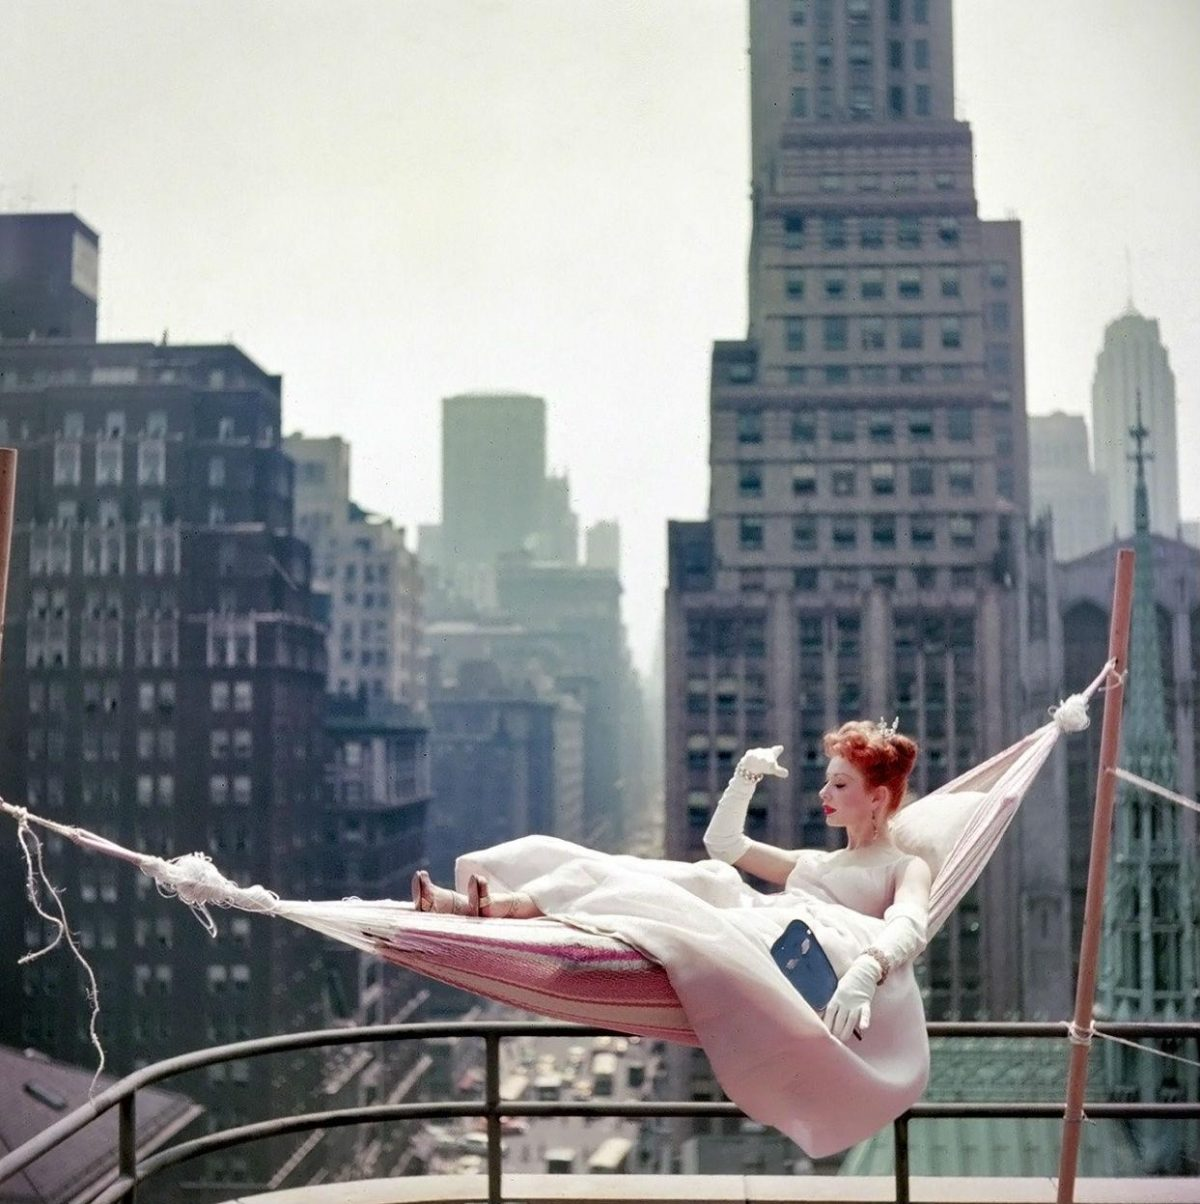 Gwen Verdon, New York City, NY, 1953 by Fashion and D-Day by Photographer Tony Vaccaro